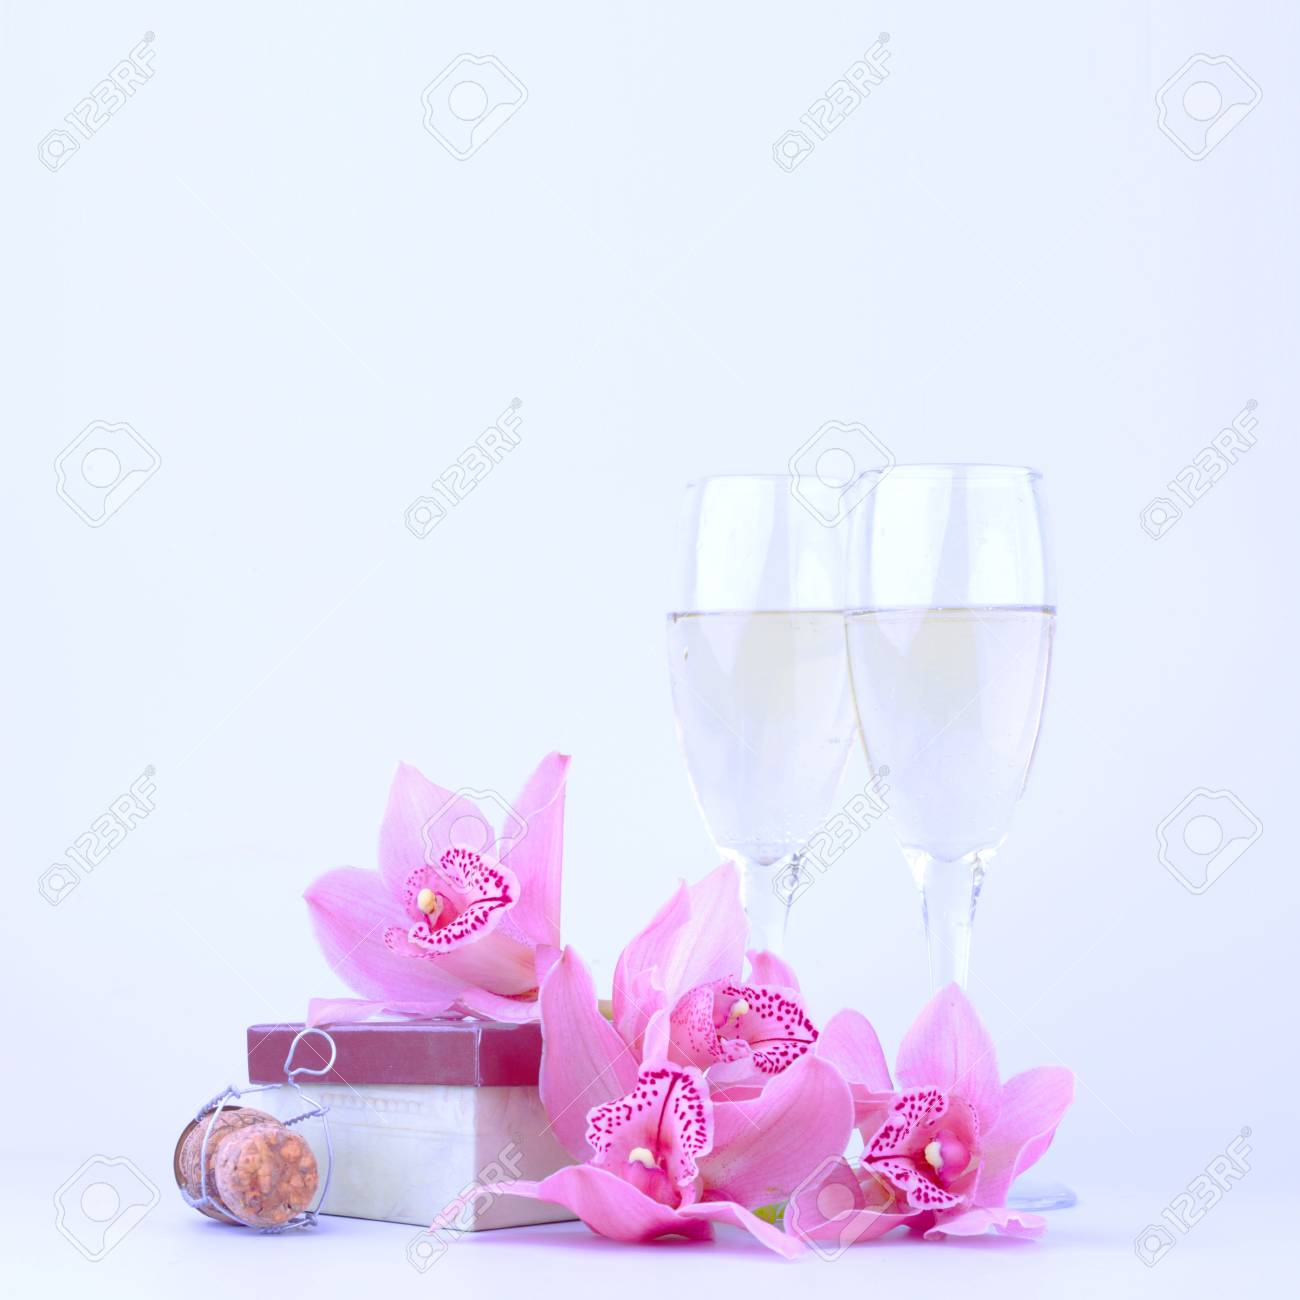 beautiful pink orchid against blue background Stock Photo - 13883737